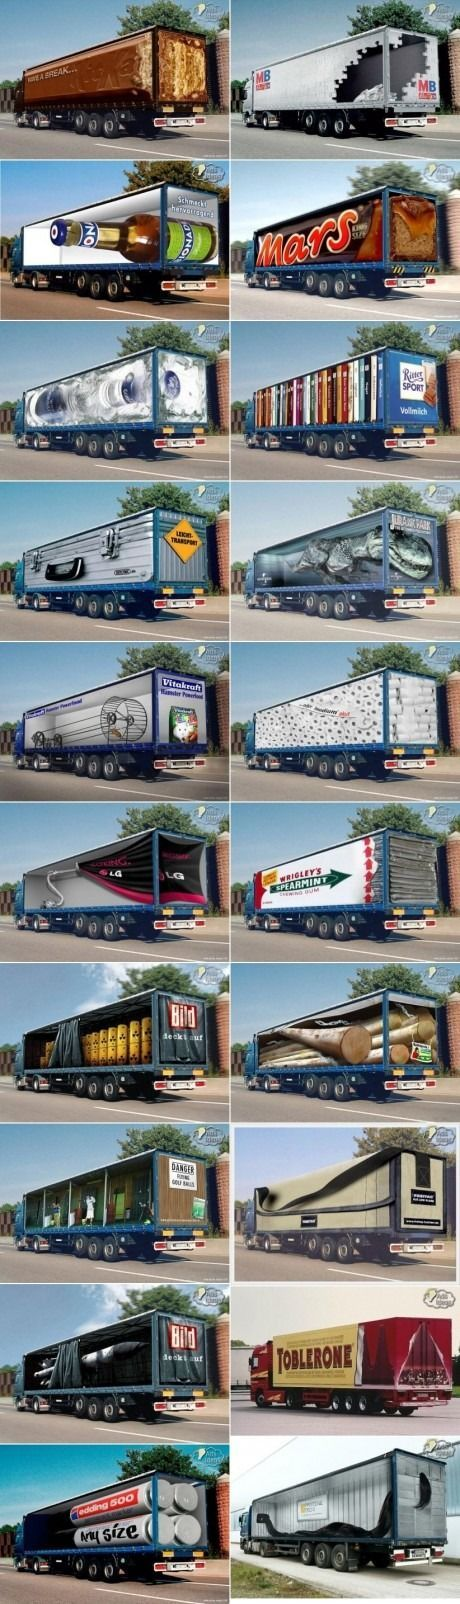 mobile billboard examples from around the world